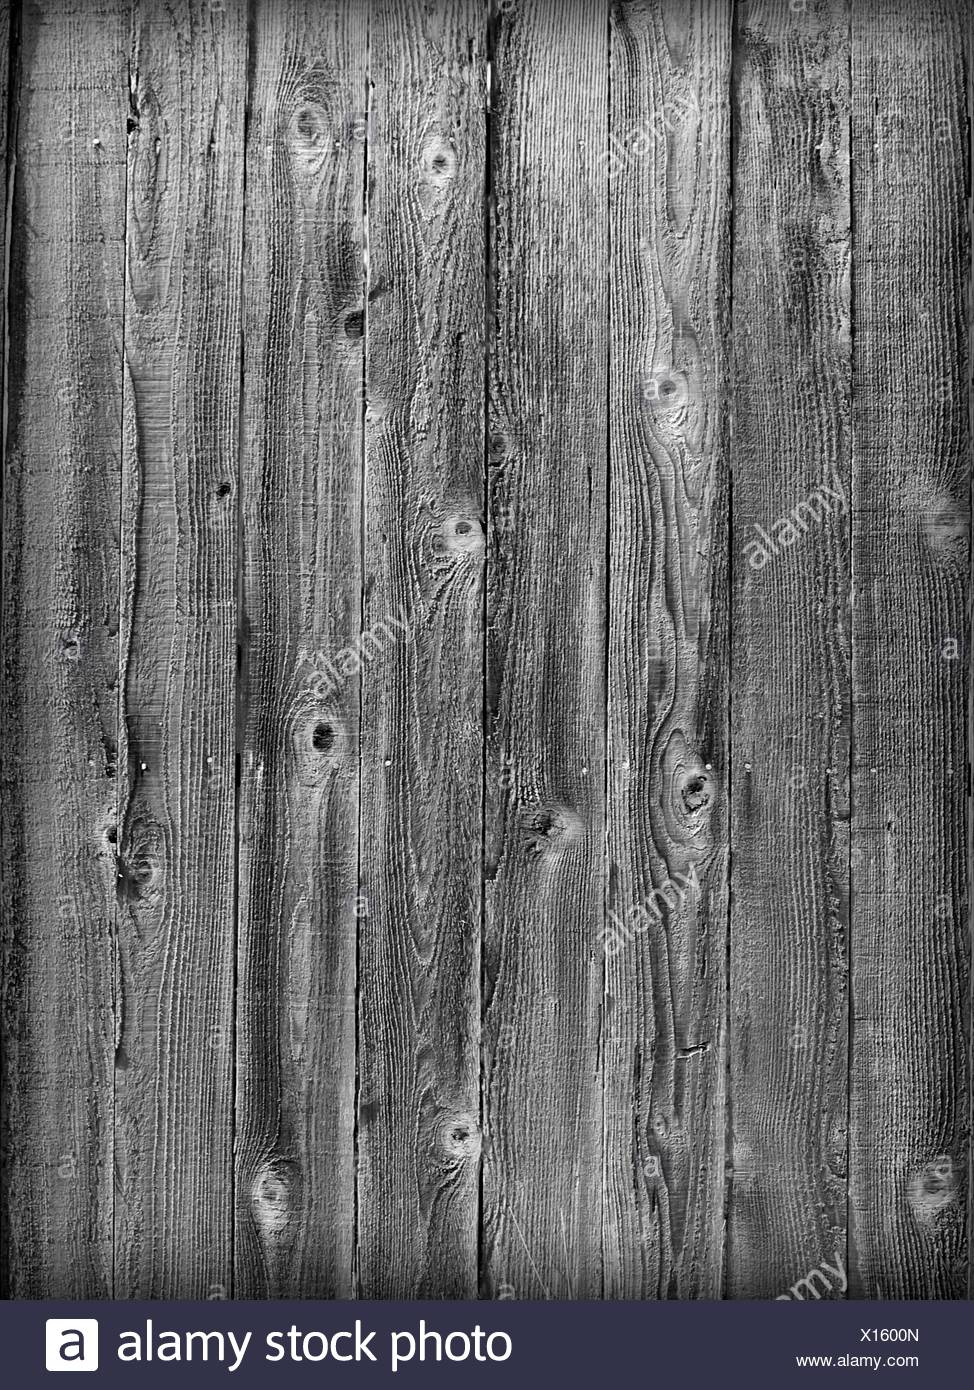 wood wall fence planks woody backdrop background texture fencing wood wall - Stock Image